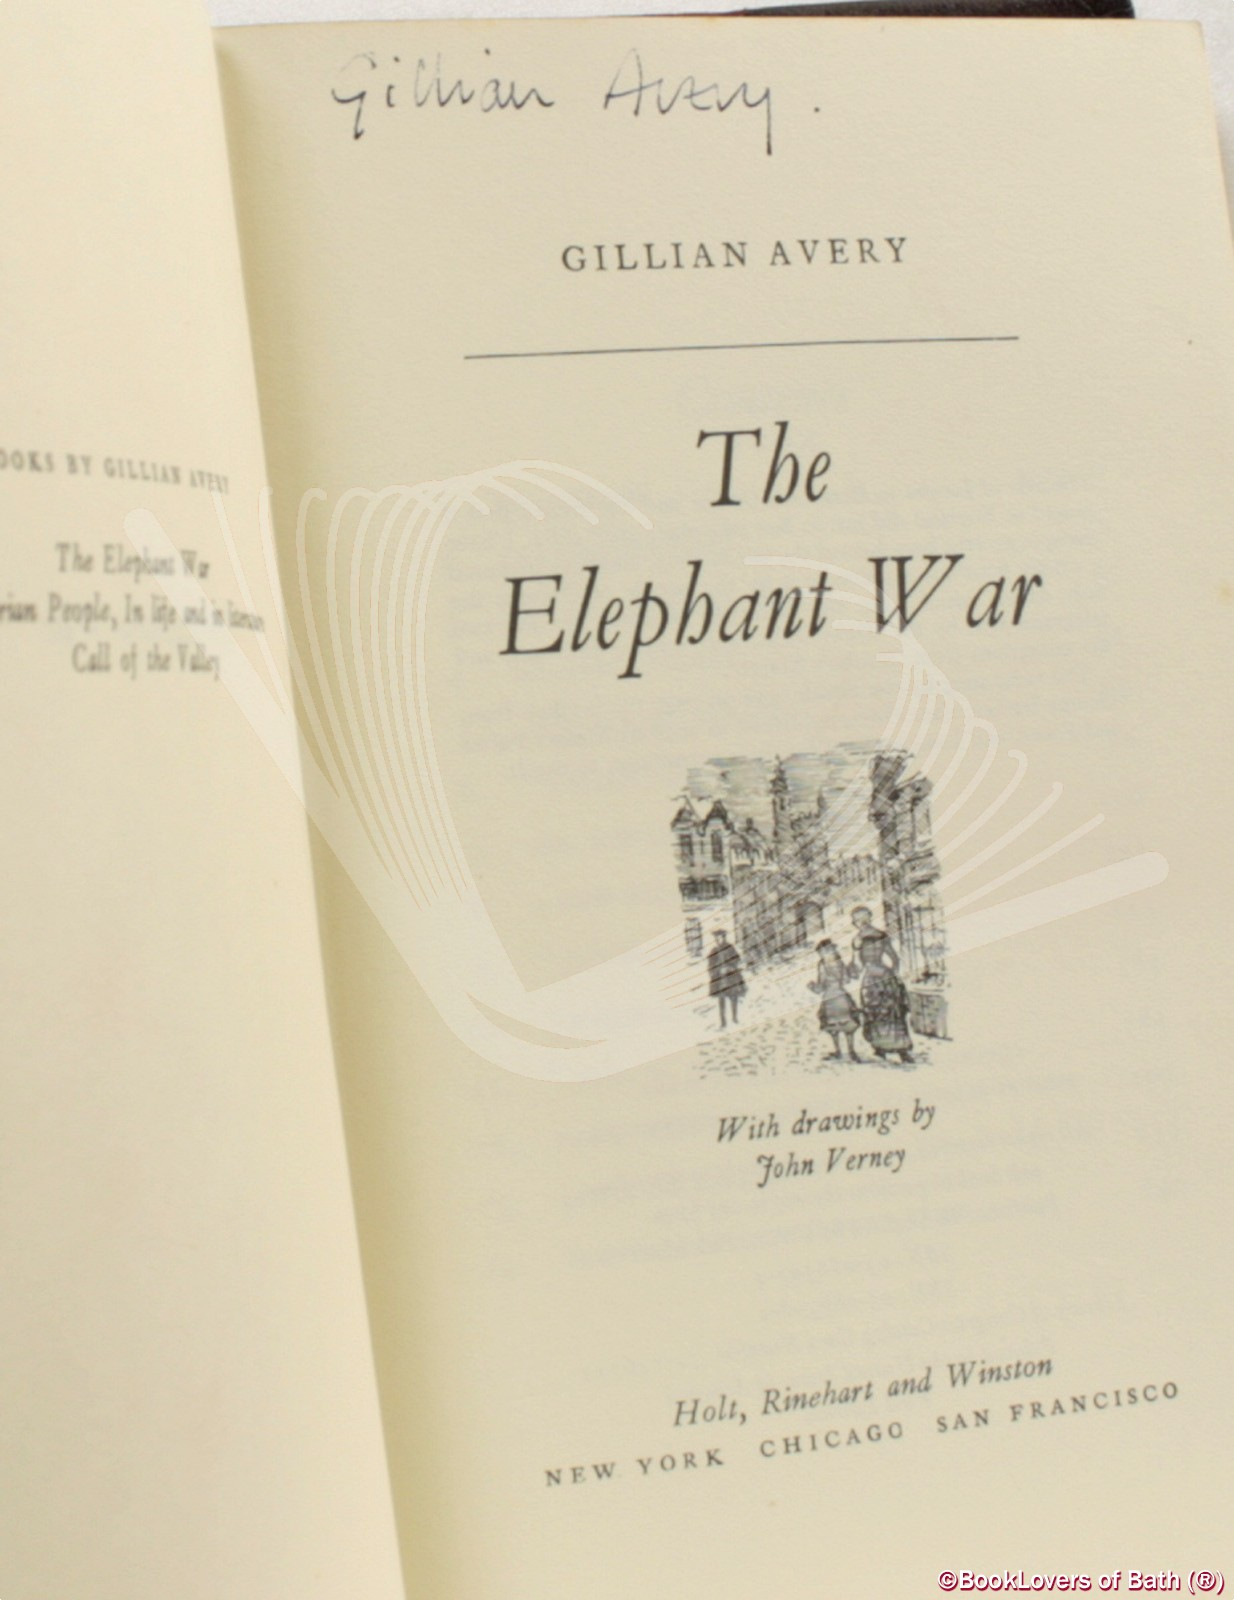 The Elephant War - Gillian Avery